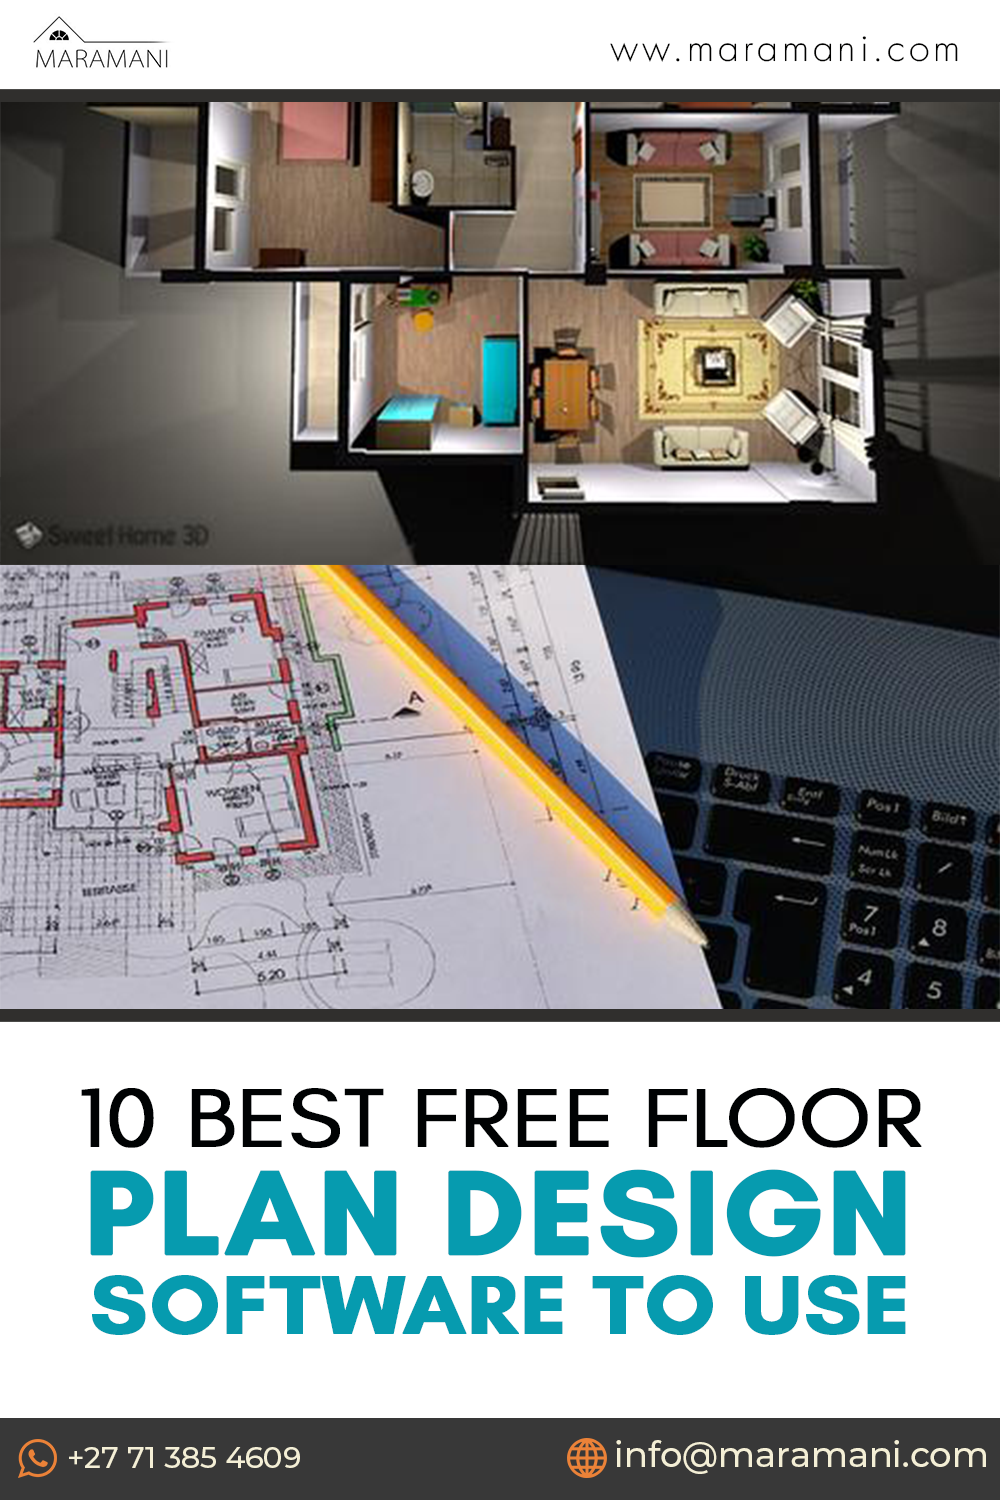 10 Best Free Floor Plan Design Software To Use Floor Plan Design Free Floor Plans Interior Design Your Home